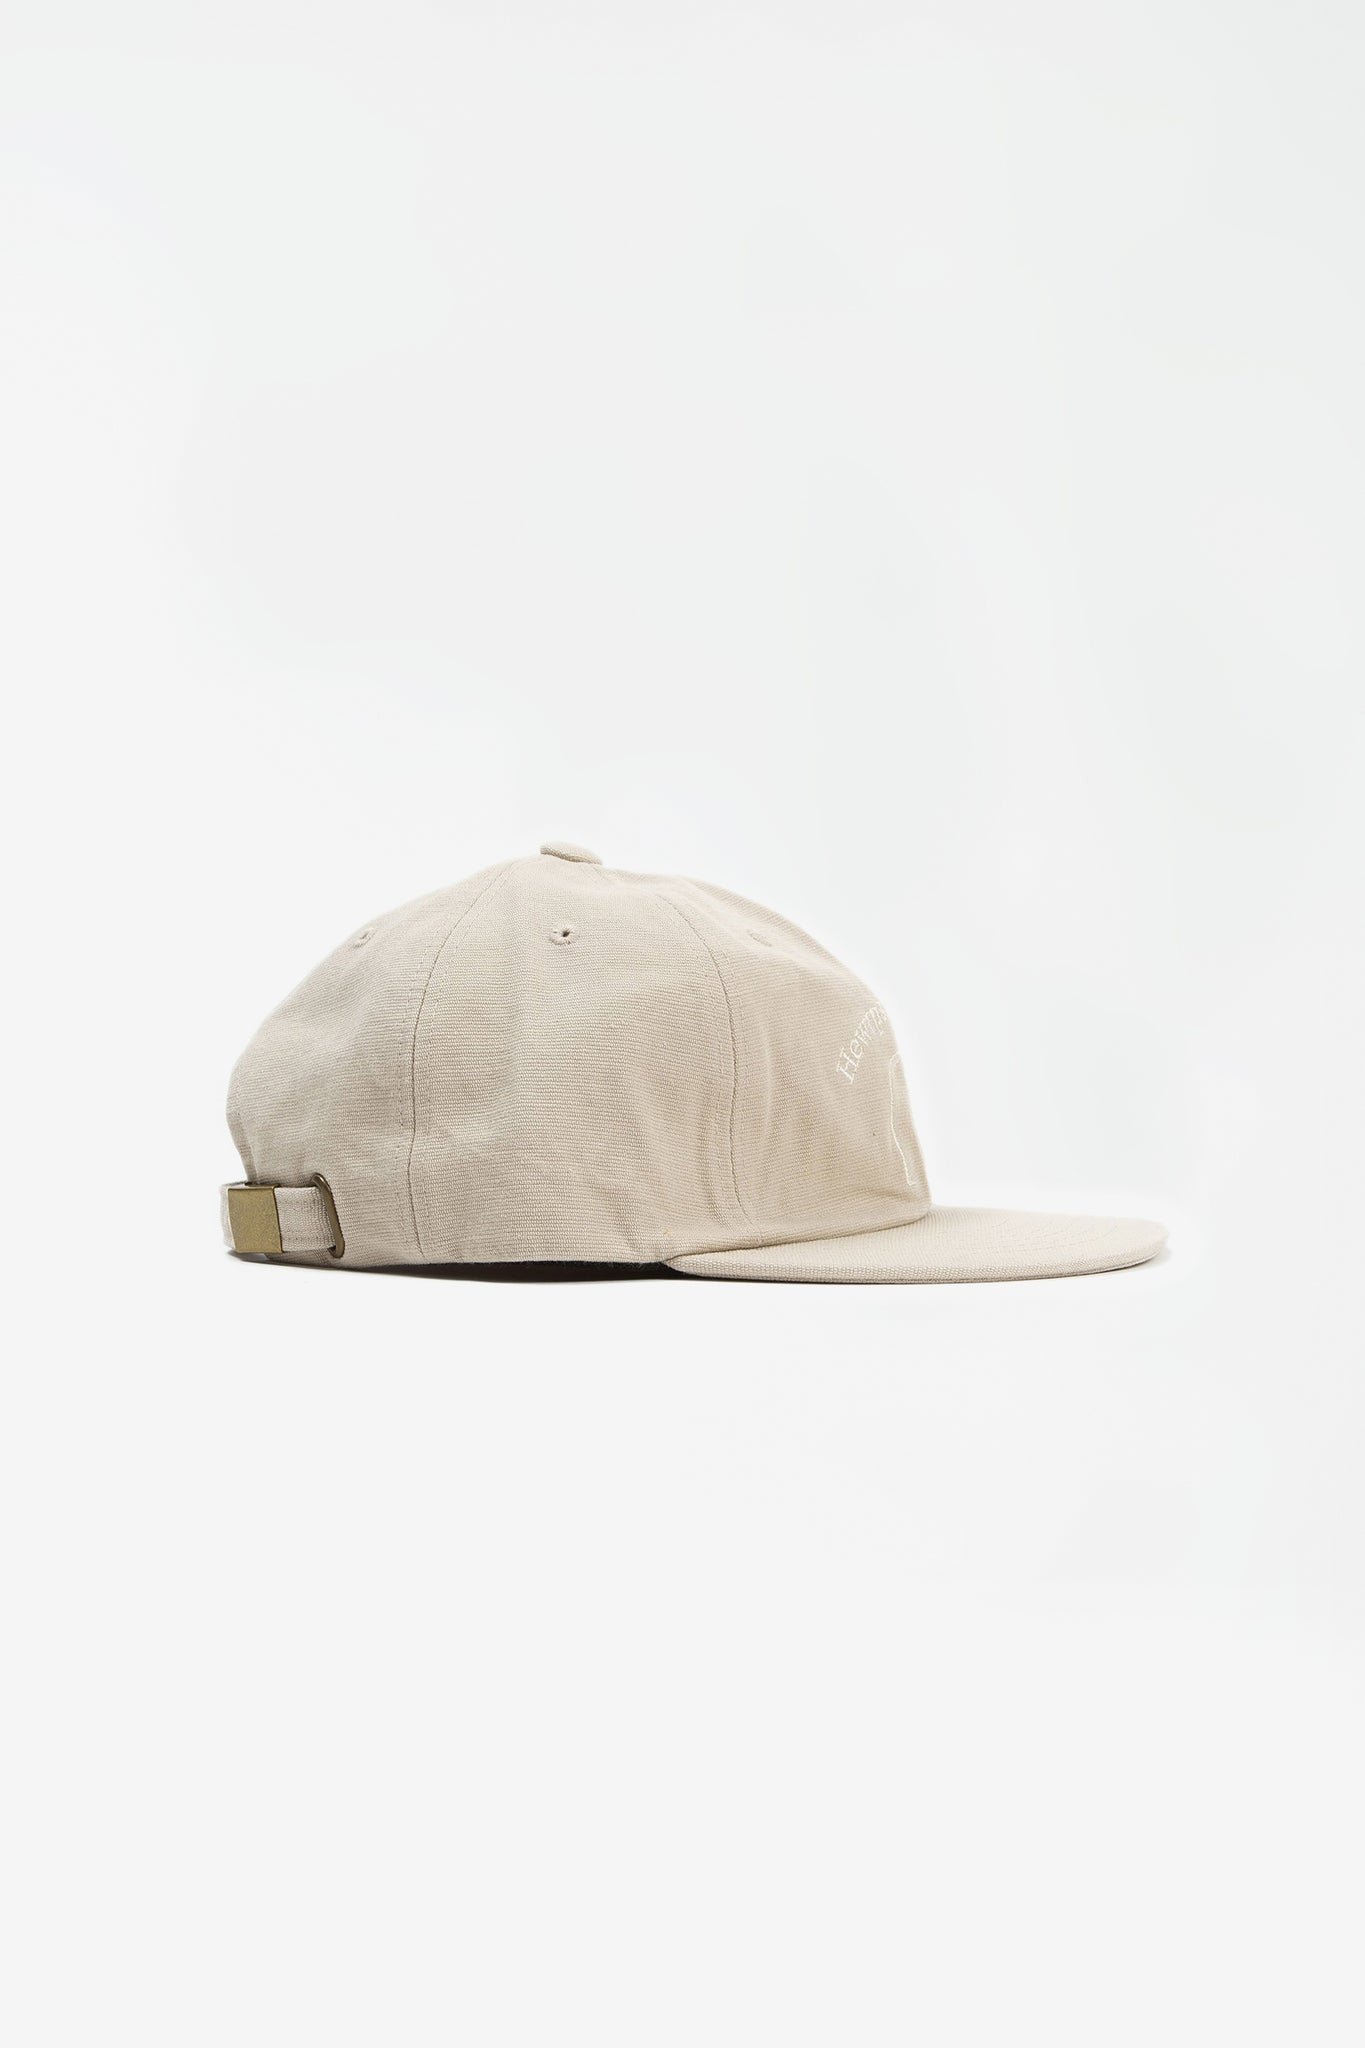 Hewrps vintage duck six panel cap ivory